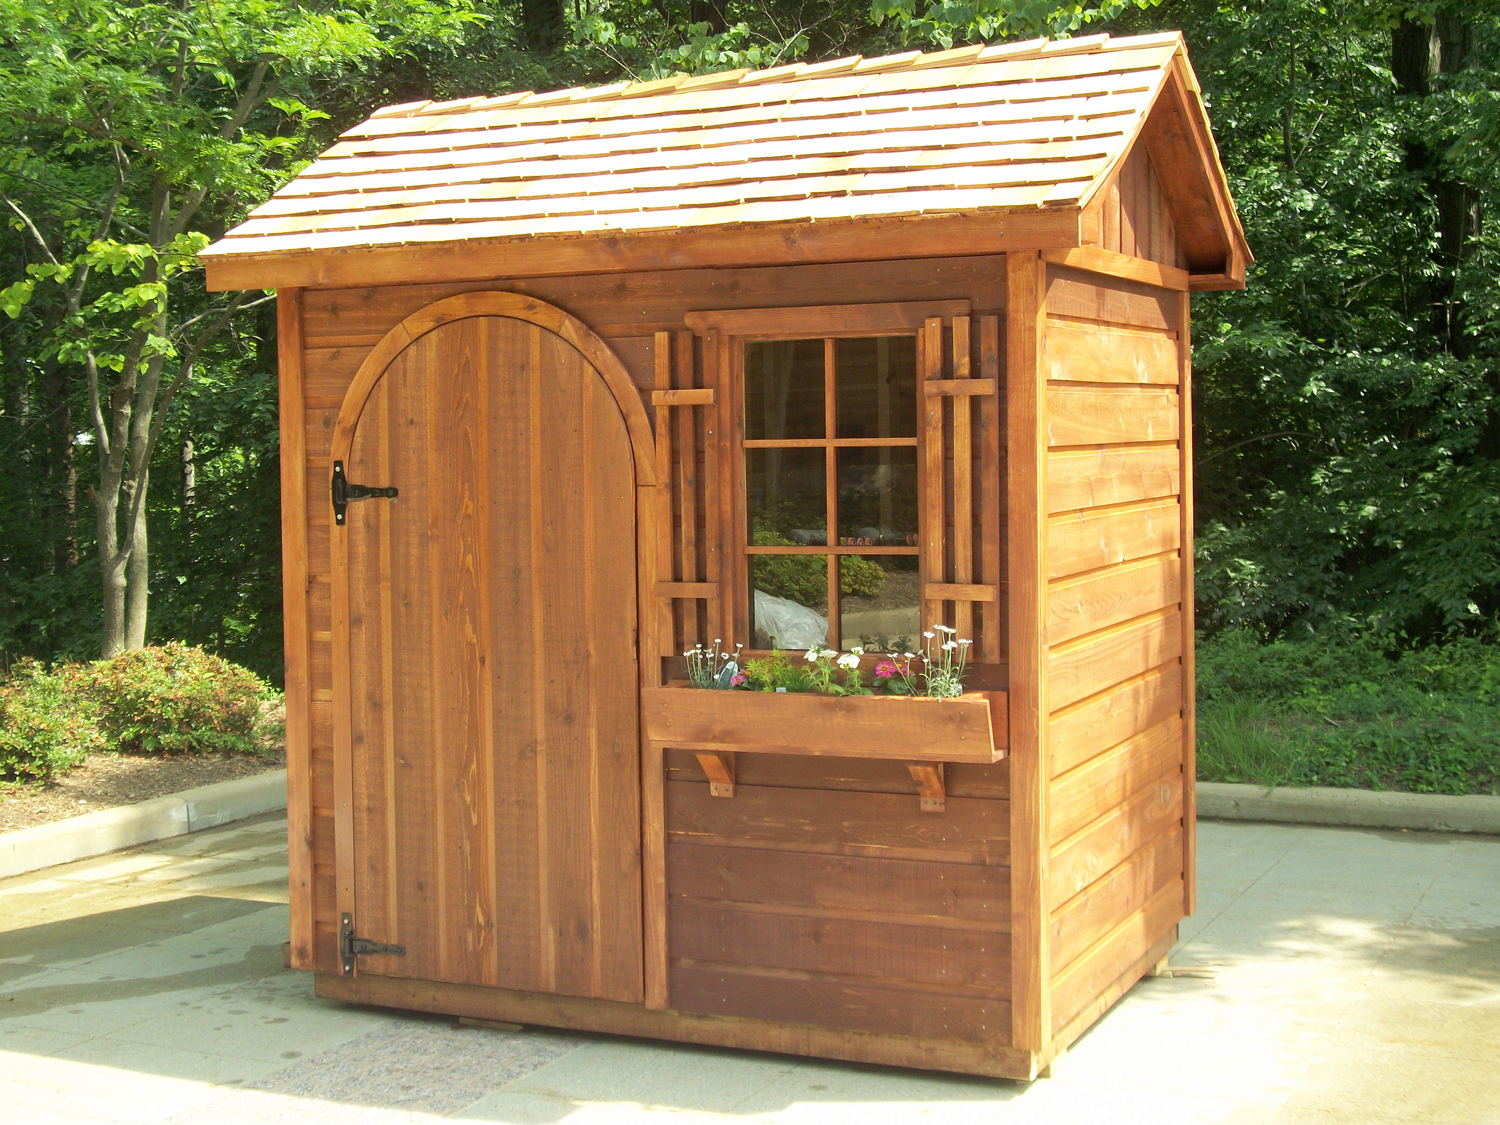 Design Schuur Garden Shed Design And Plans Shed Blueprints